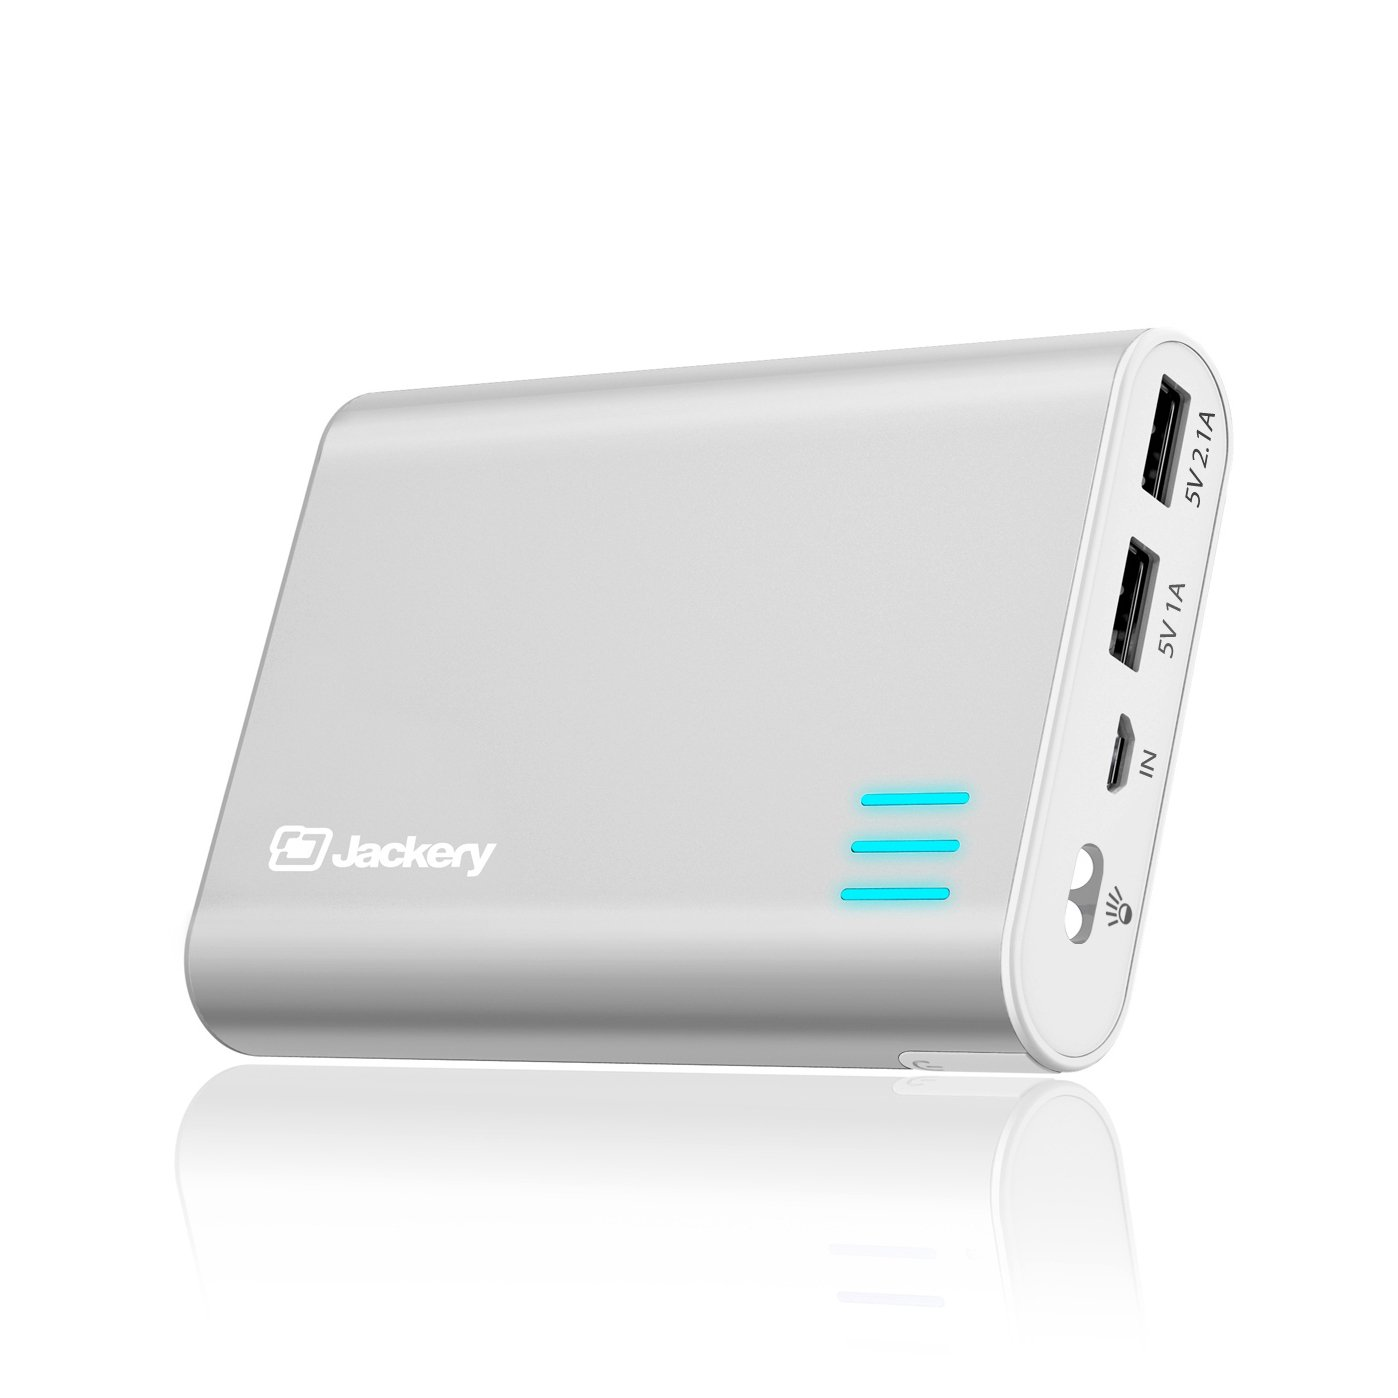 Jackery Giant+ Premium 12,000 mAh Dual USB Portable Battery Charger & External Battery Pack (Total 3.1A Output) for iPhone 8 /8 Plus, iPhone X, Galaxy S8, S8+ & Other Smart Devices (Silver)